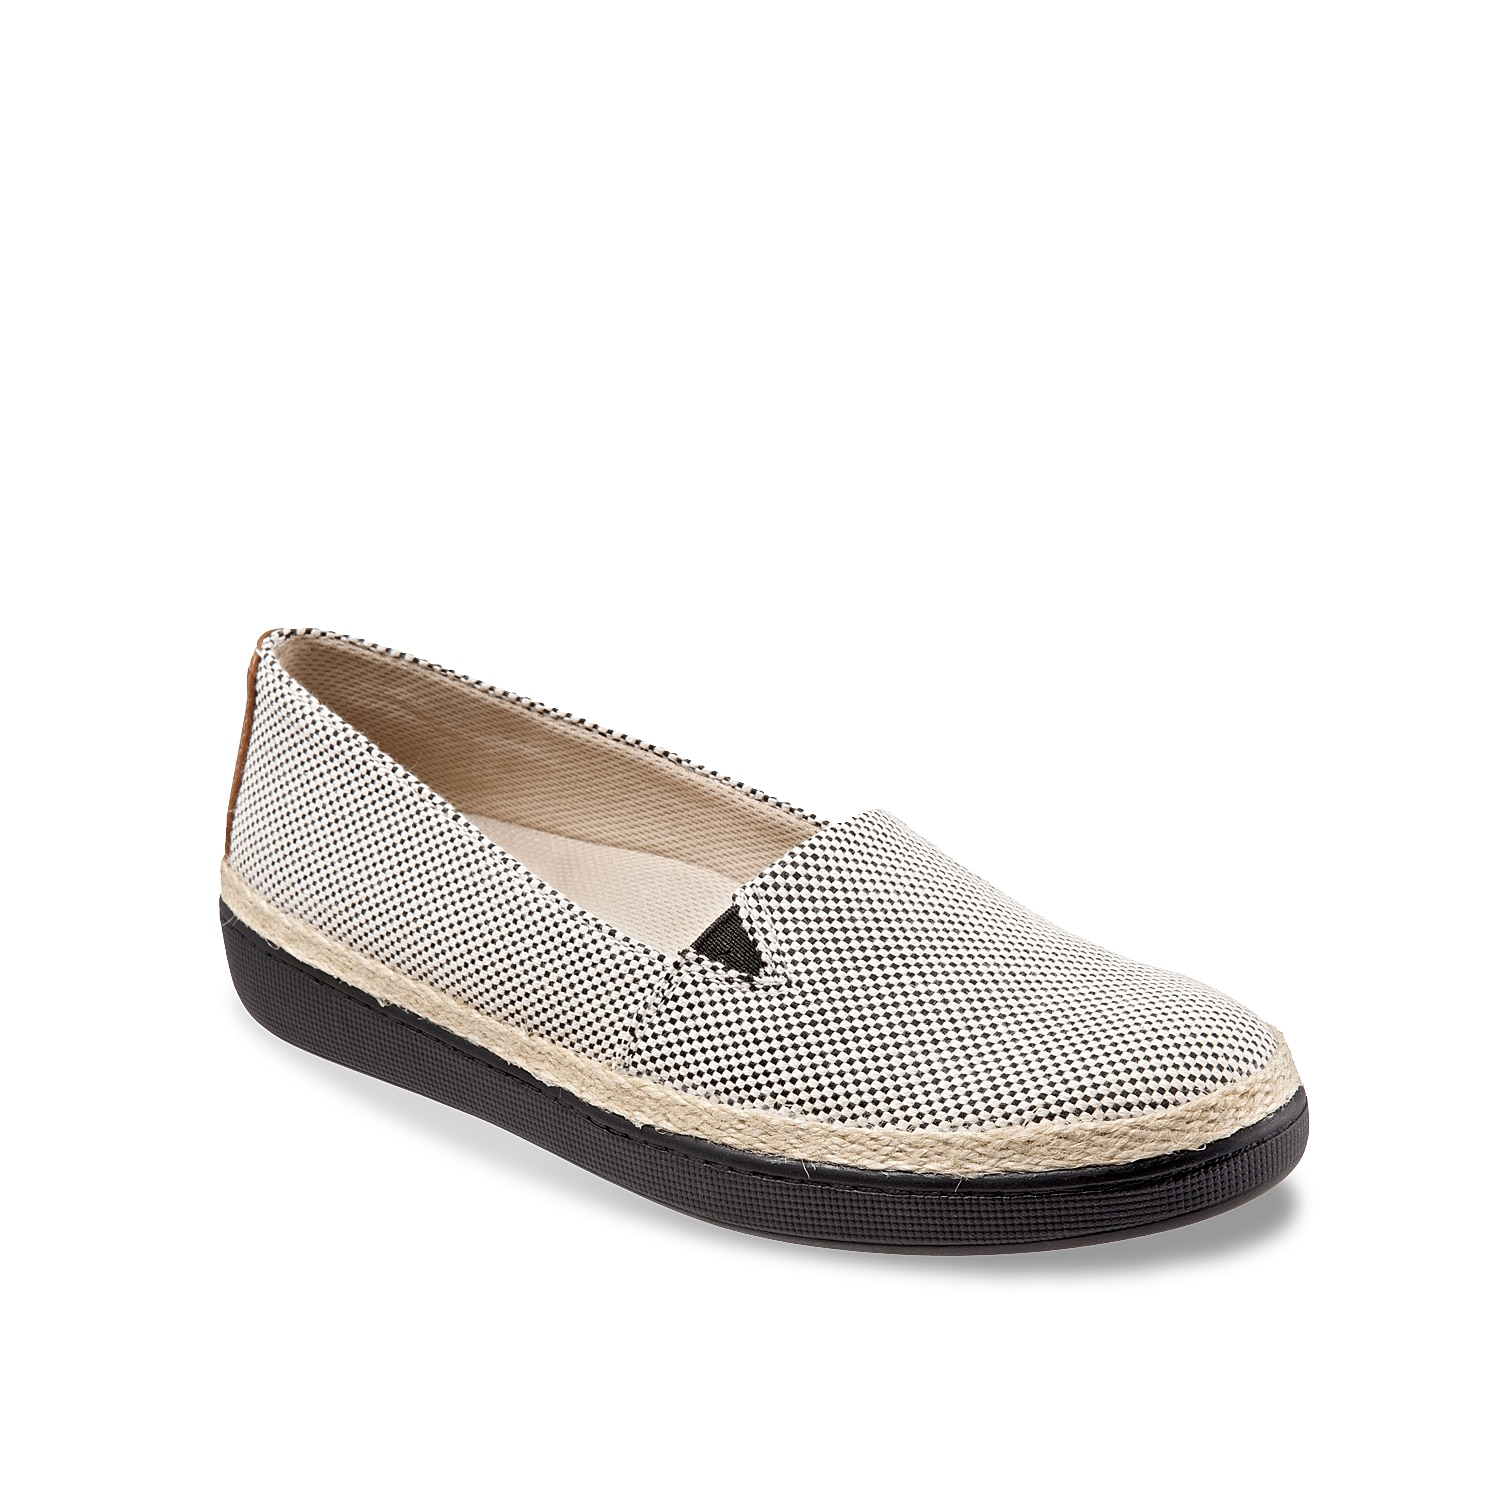 Slip into something a little more casual thanks to the Accent flat from Trotters. The cushioned footbed is enhanced with arch support to make these slip-ons your new go-to pick.